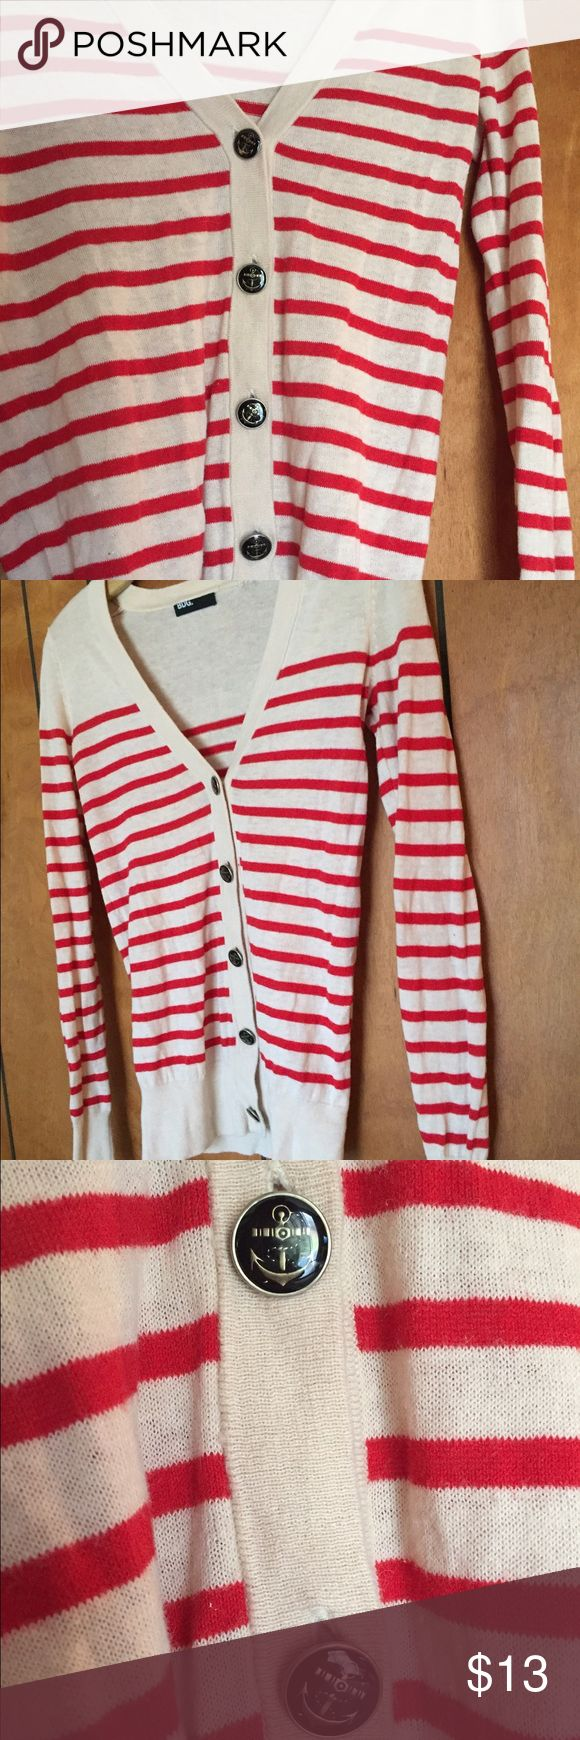 nautical cardigan Lightly worn striped cardigan, with anchor buttons. Has small snag in the back where the tag is (pictured). BDG Sweaters Cardigans